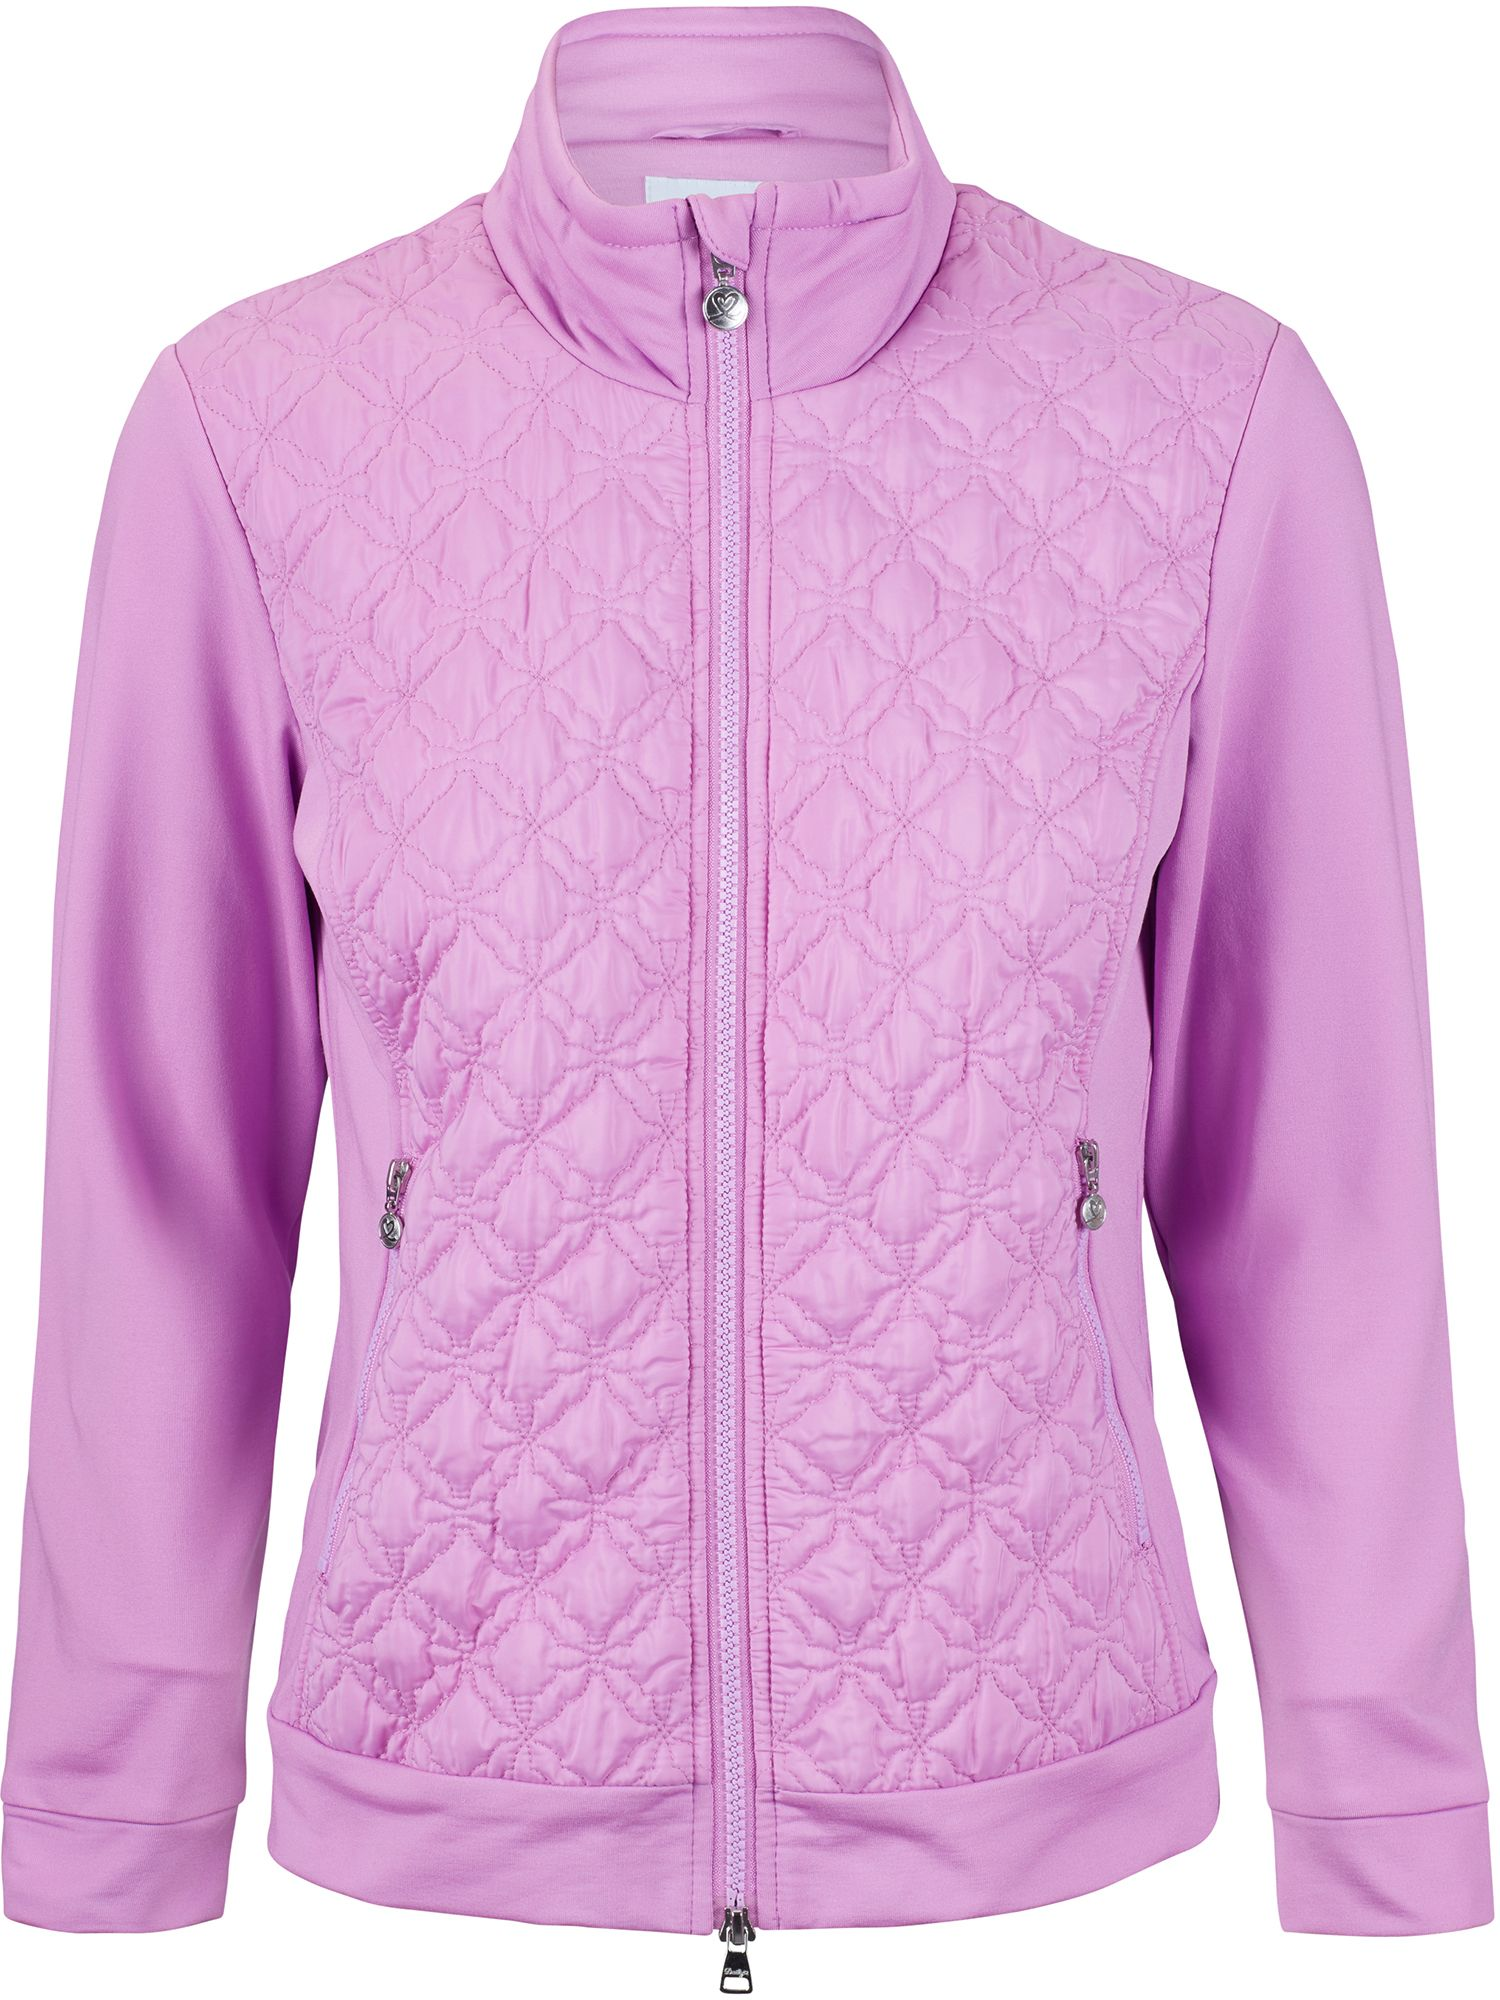 Daily Sports Course Jacket, Pink